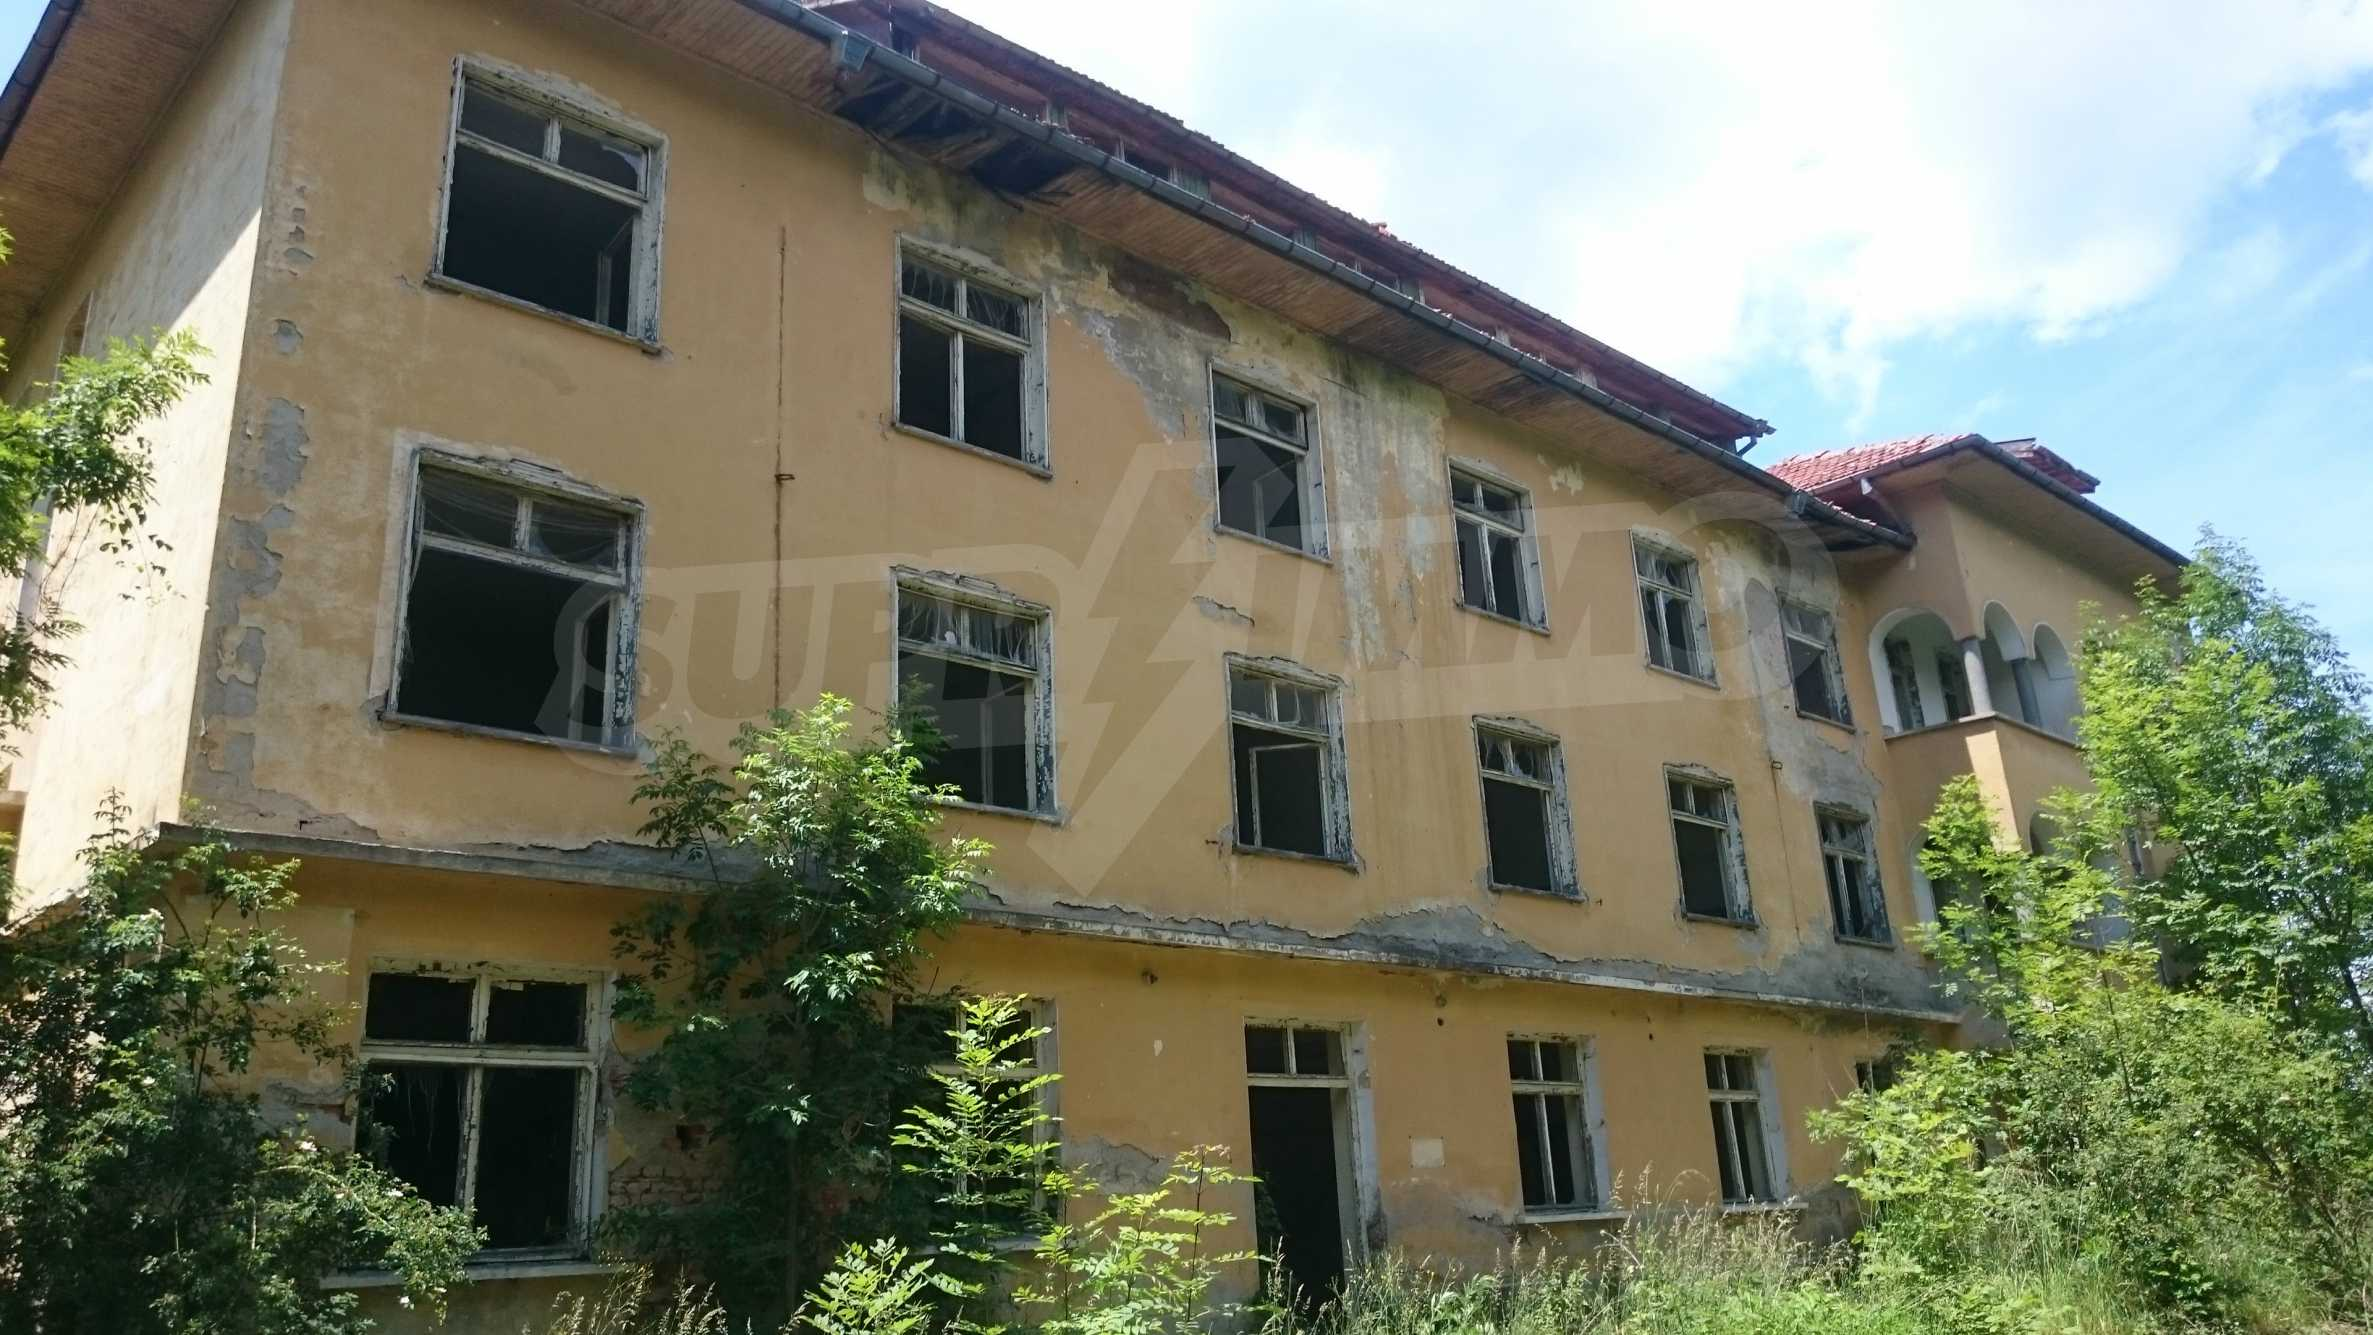 Hotel in need of complete renovation 69